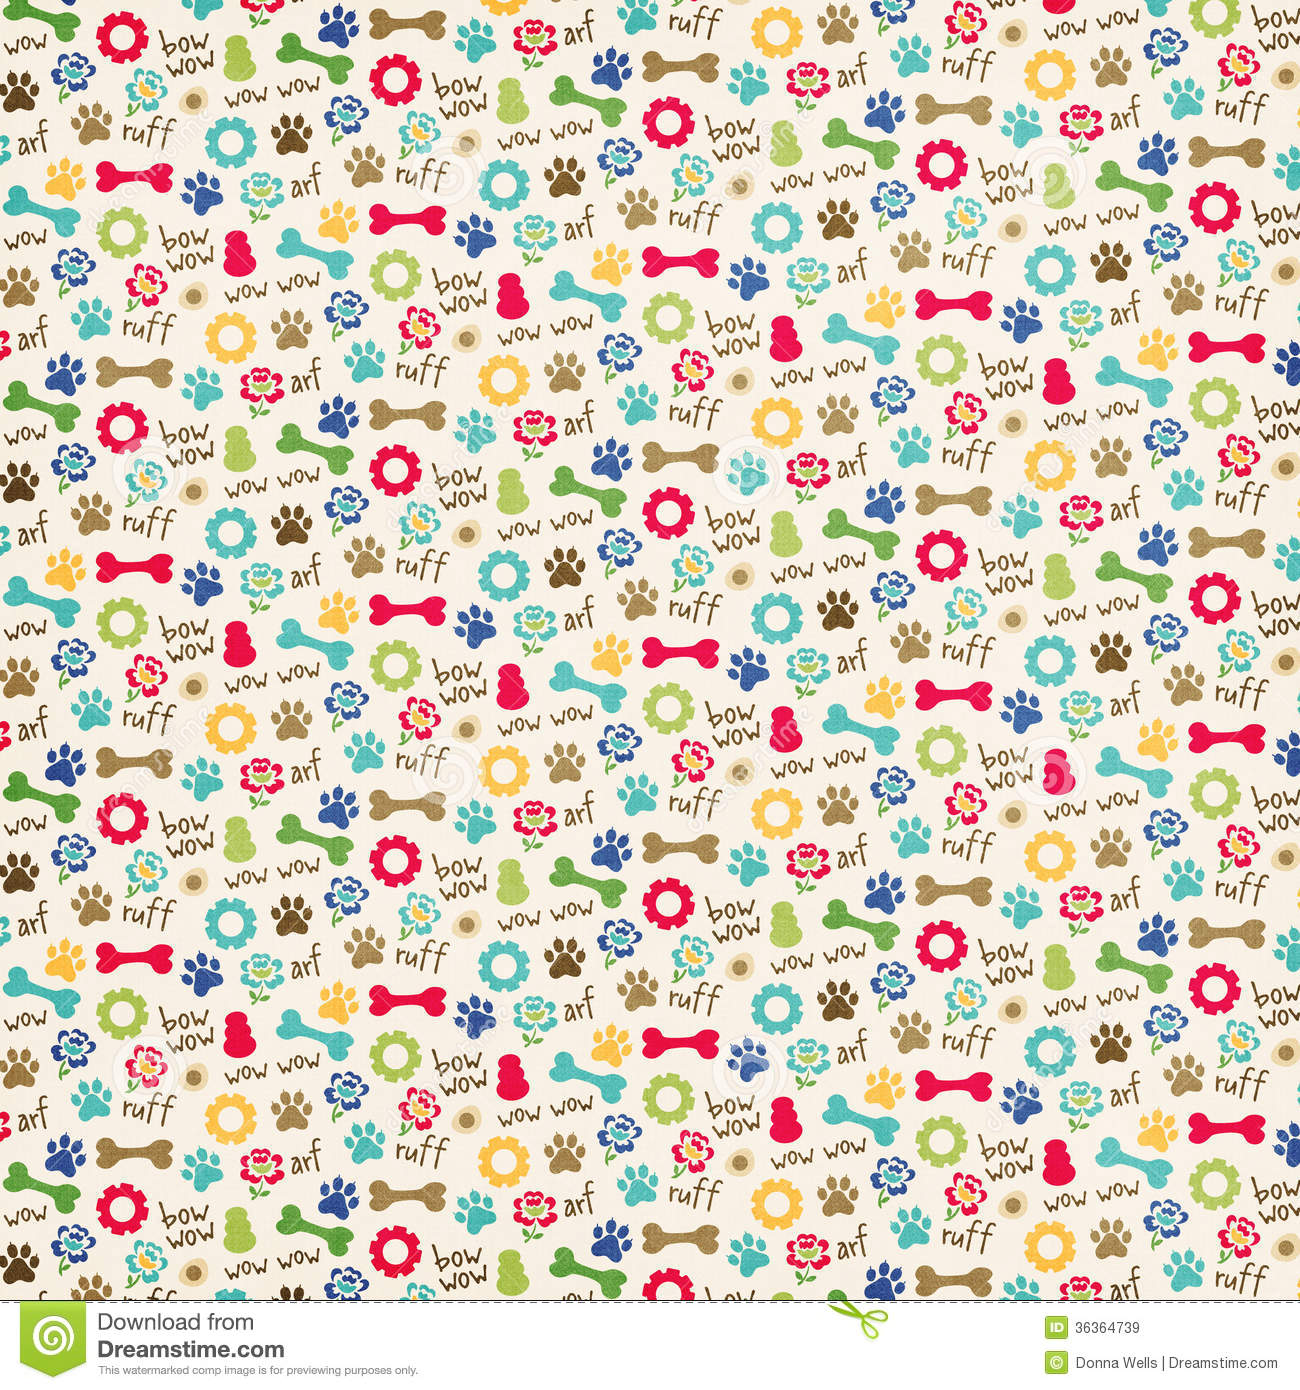 Dog-Themed Pattern Royalty Free Stock Images - Image: 36364739